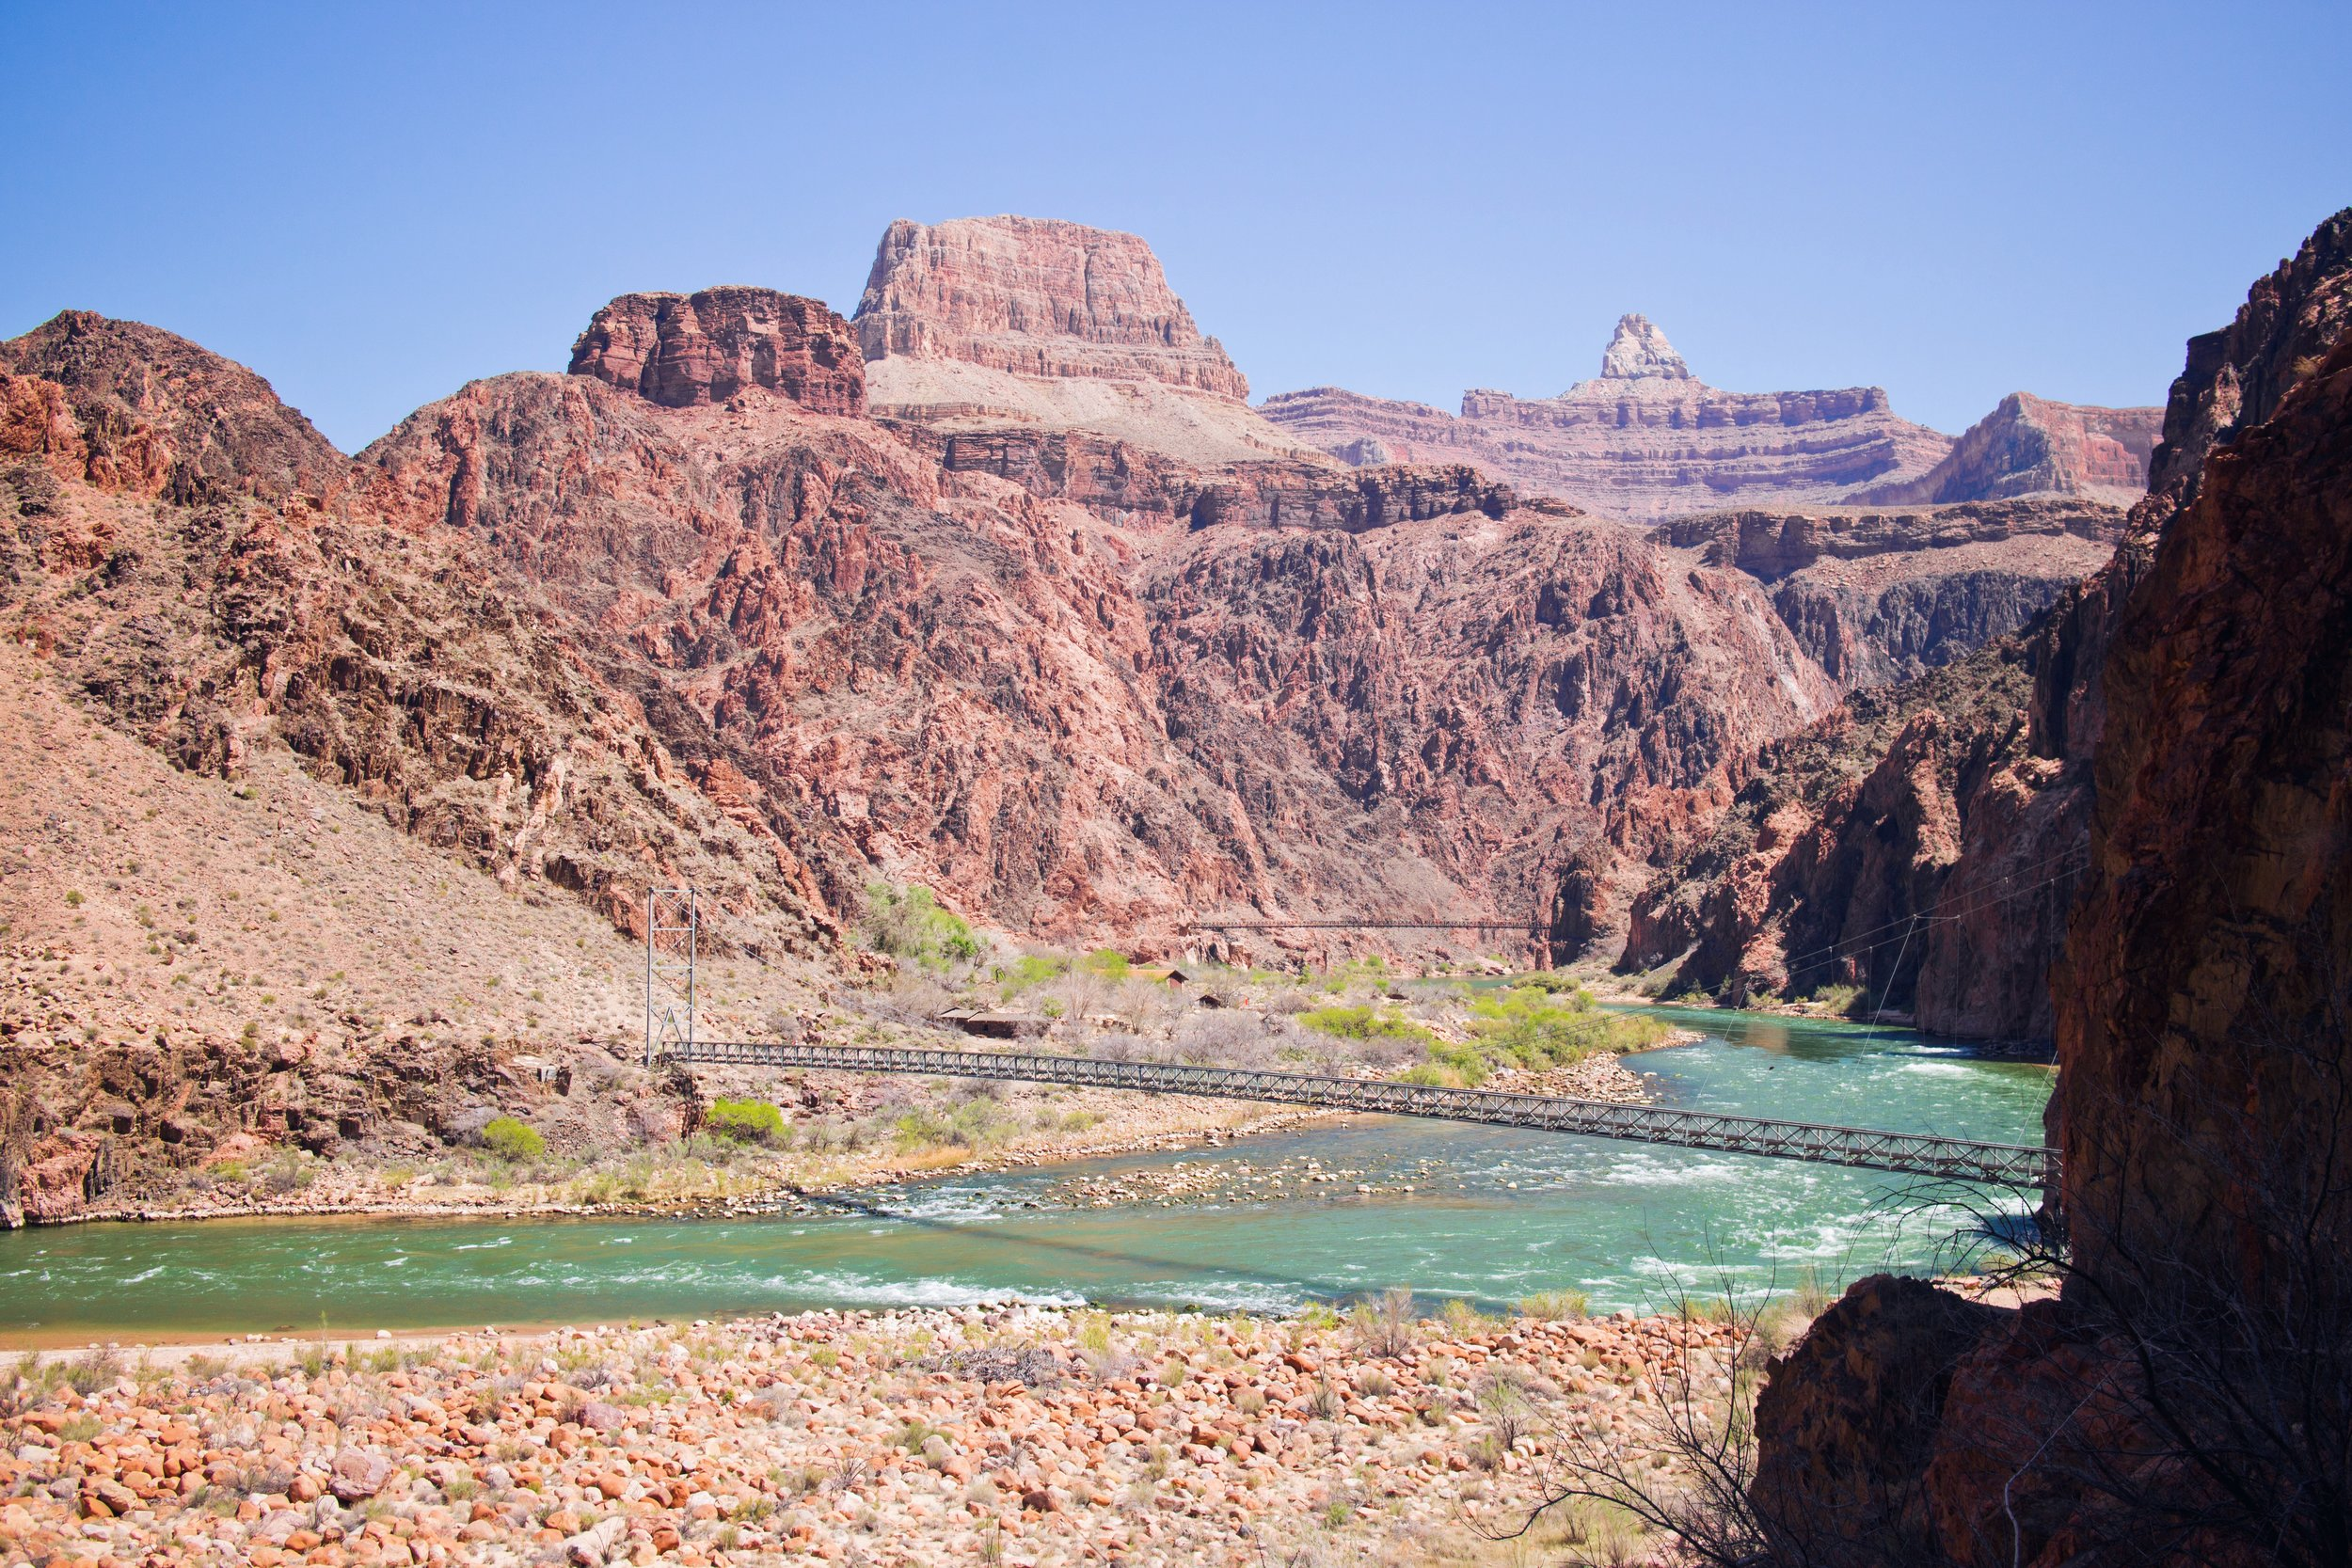 The Colorado River with Bright Angel Bridge in the foreground